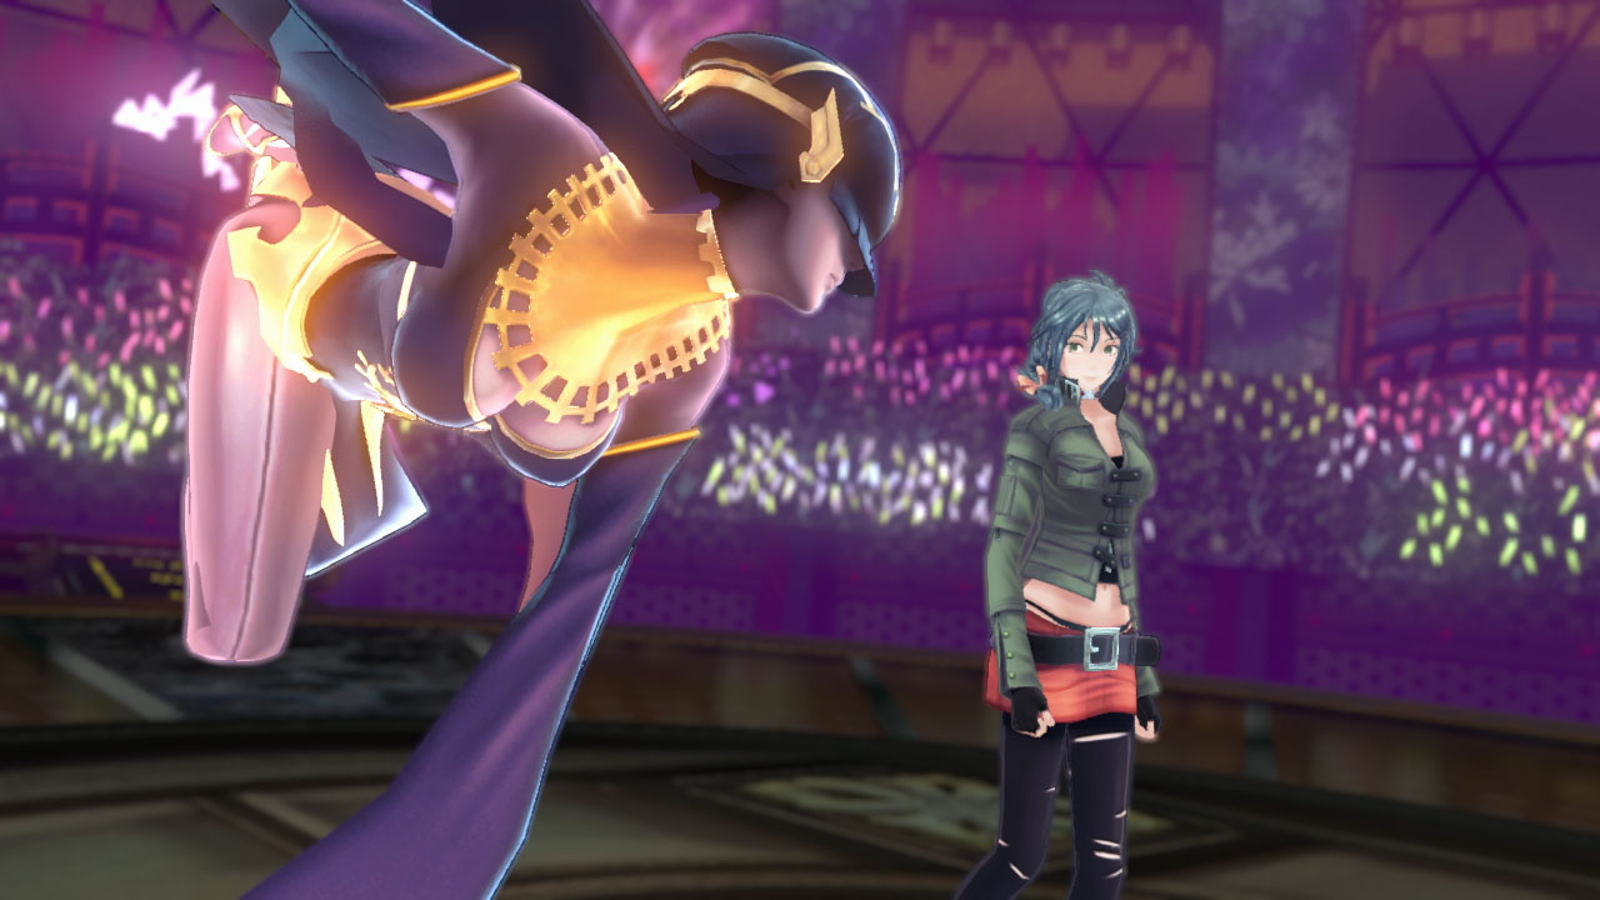 Tokyo Mirage Sessions #FE We'll begin with the game I think is most likely to get ported. A dark horse candidate? Hardly. In a bizarro world where Fire Emblem is a hit series and Persona 5 rocked the sales charts on PlayStation 4, a crossover of the two series would make tons of sense on Switch. Yes, Nintendo would have to shift all the second-screen stuff to a sub-menu, but it'd be worth it.